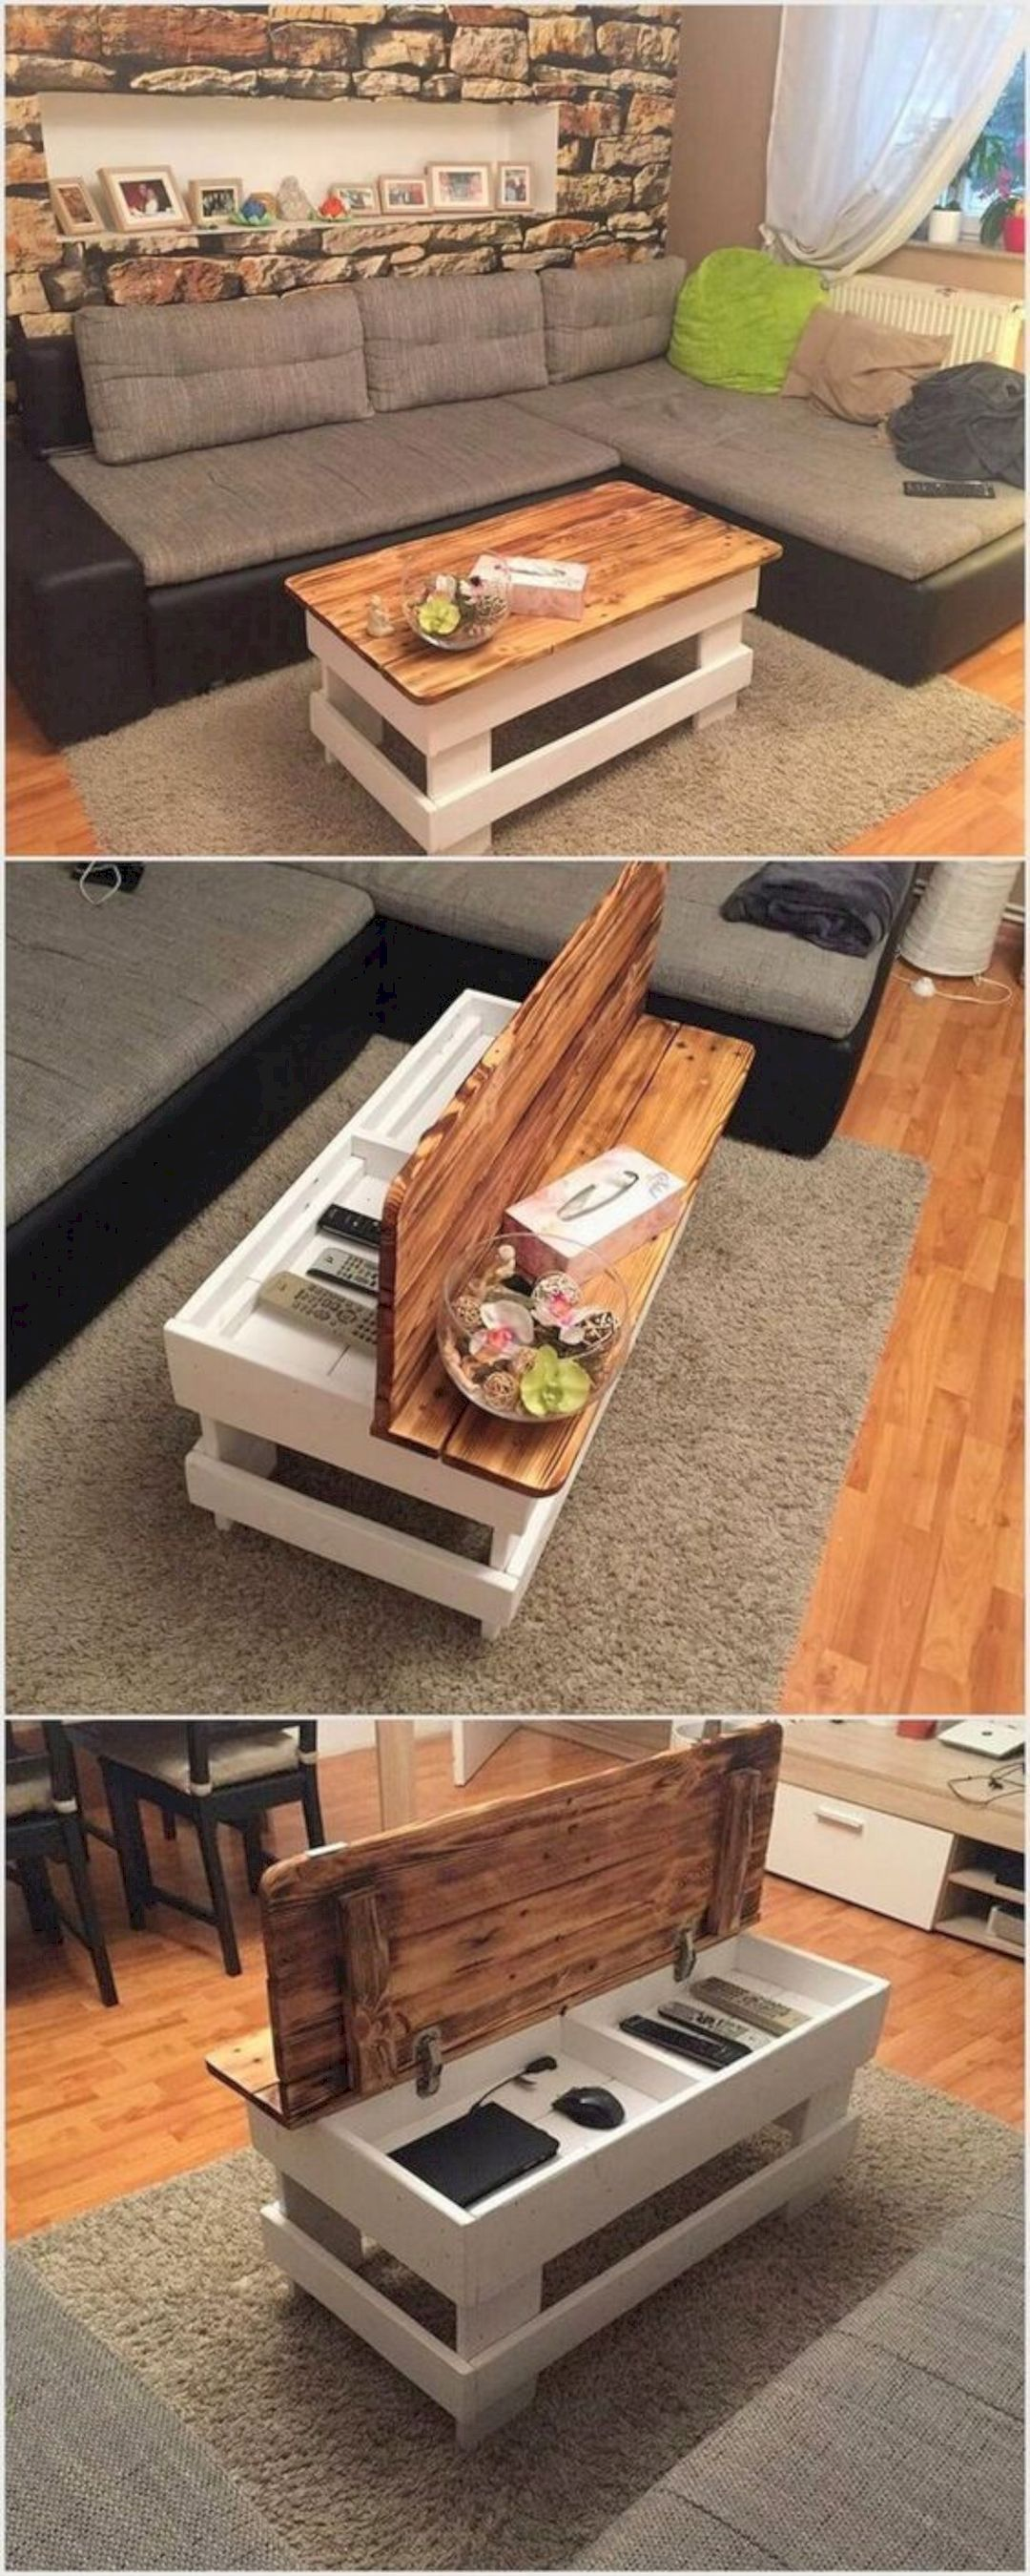 17 Excellent And Creative Ideas For Pallet Furniture Diy Projects